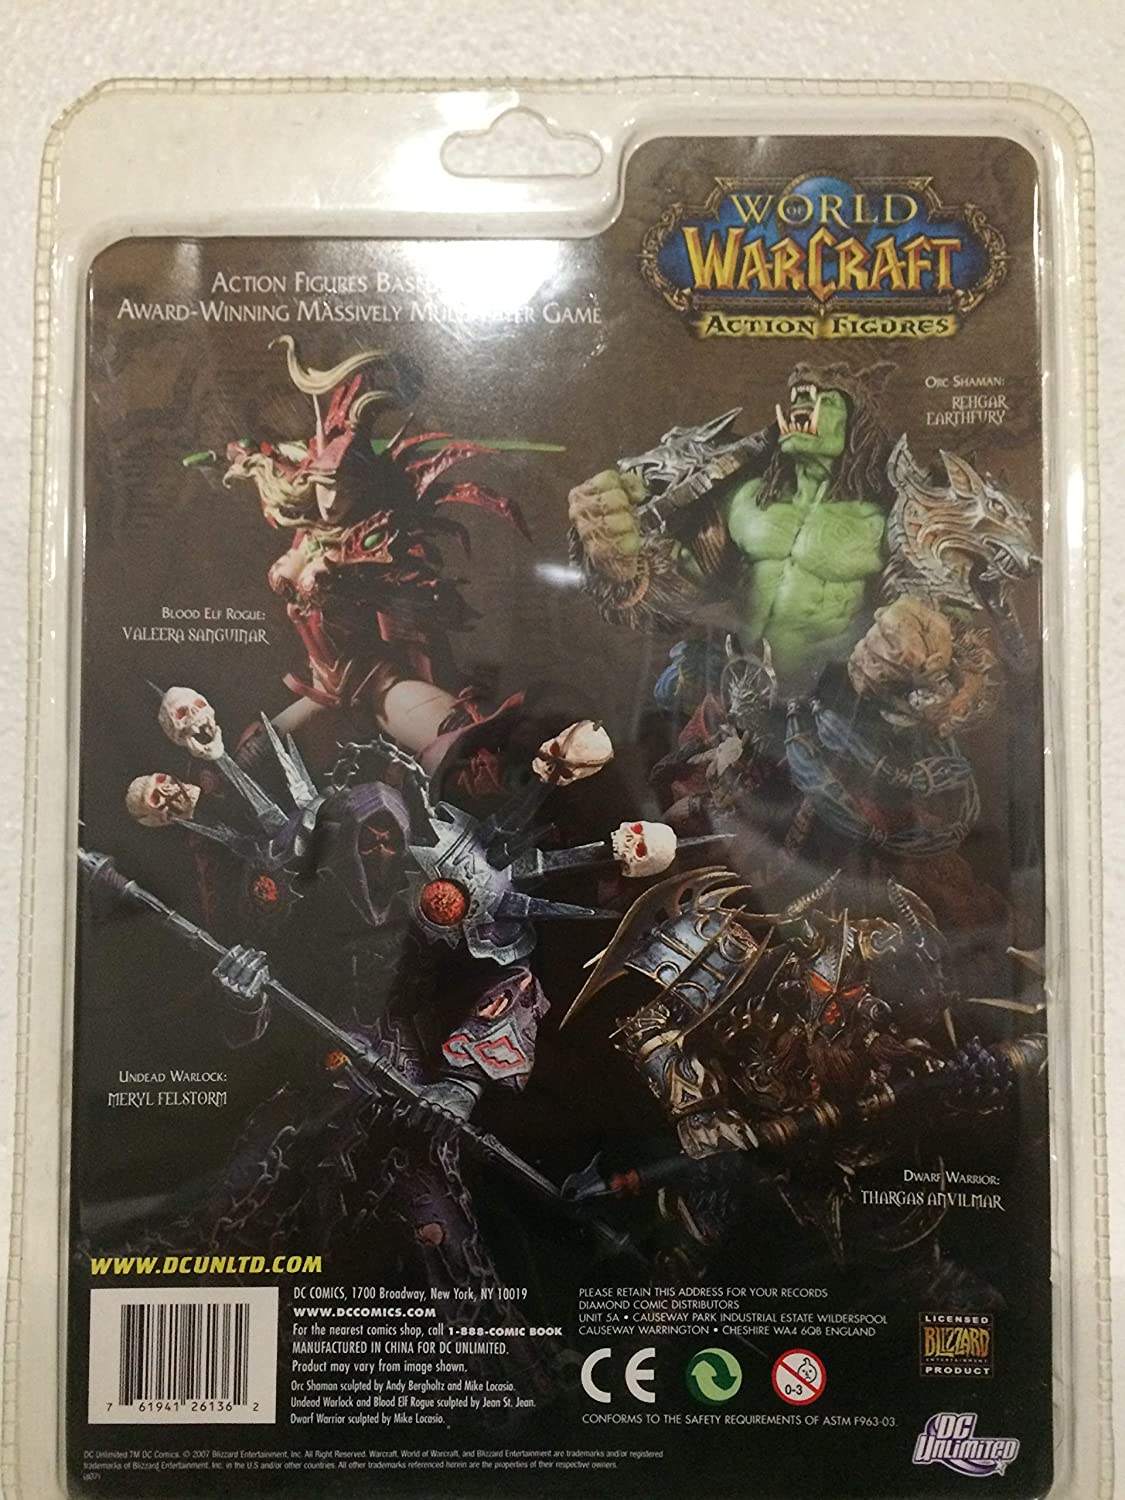 World of Warcraft: Orc Shaman Rehgar Earthfury Action Figure by DC unlimited